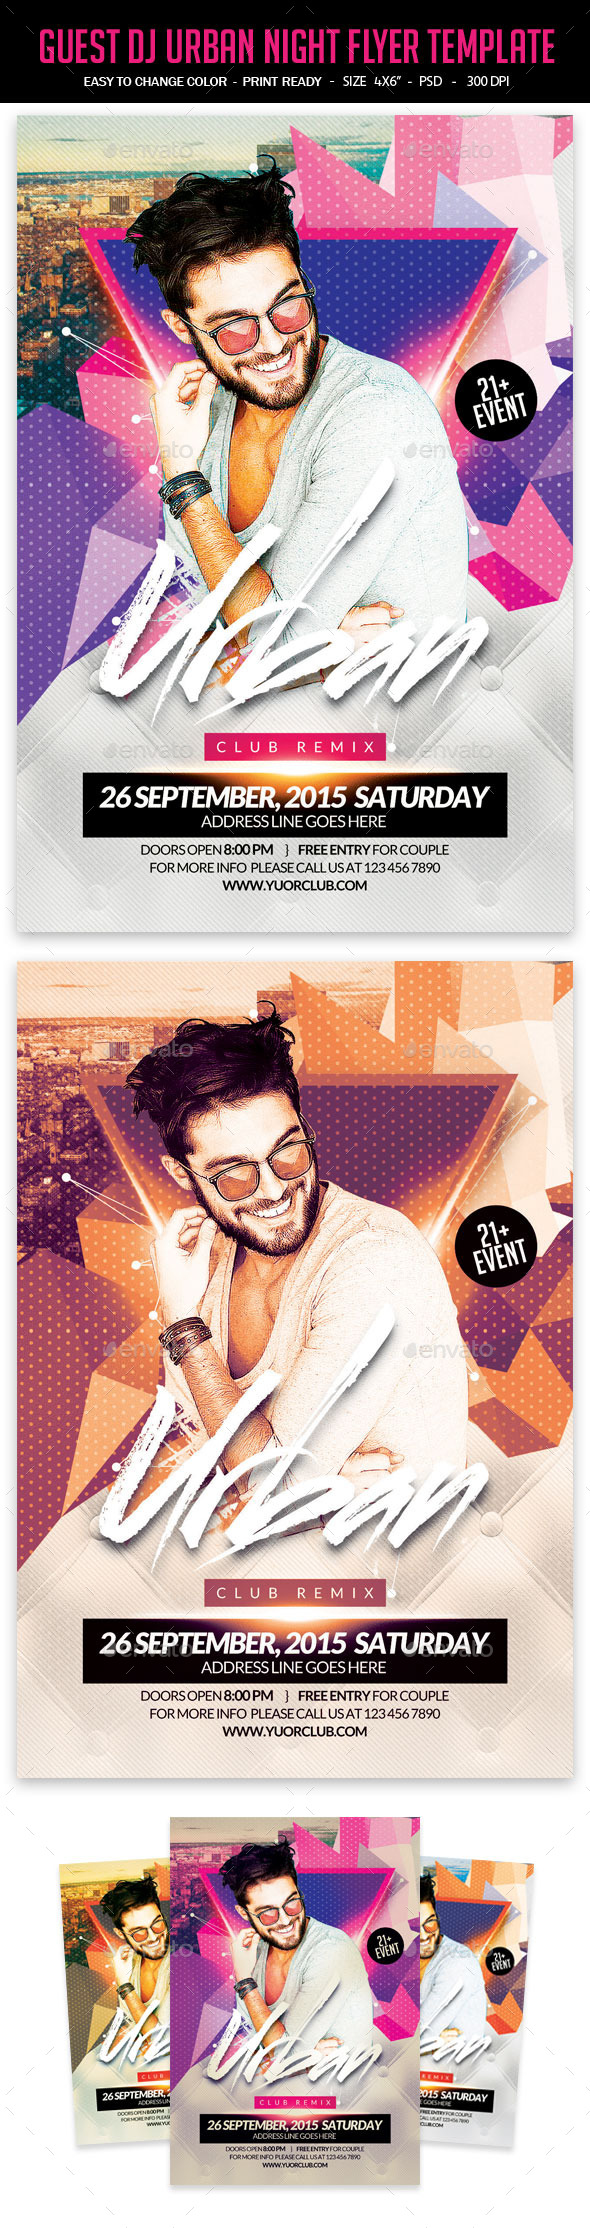 Guest DJ Urban Night Flyer Template - Clubs & Parties Events